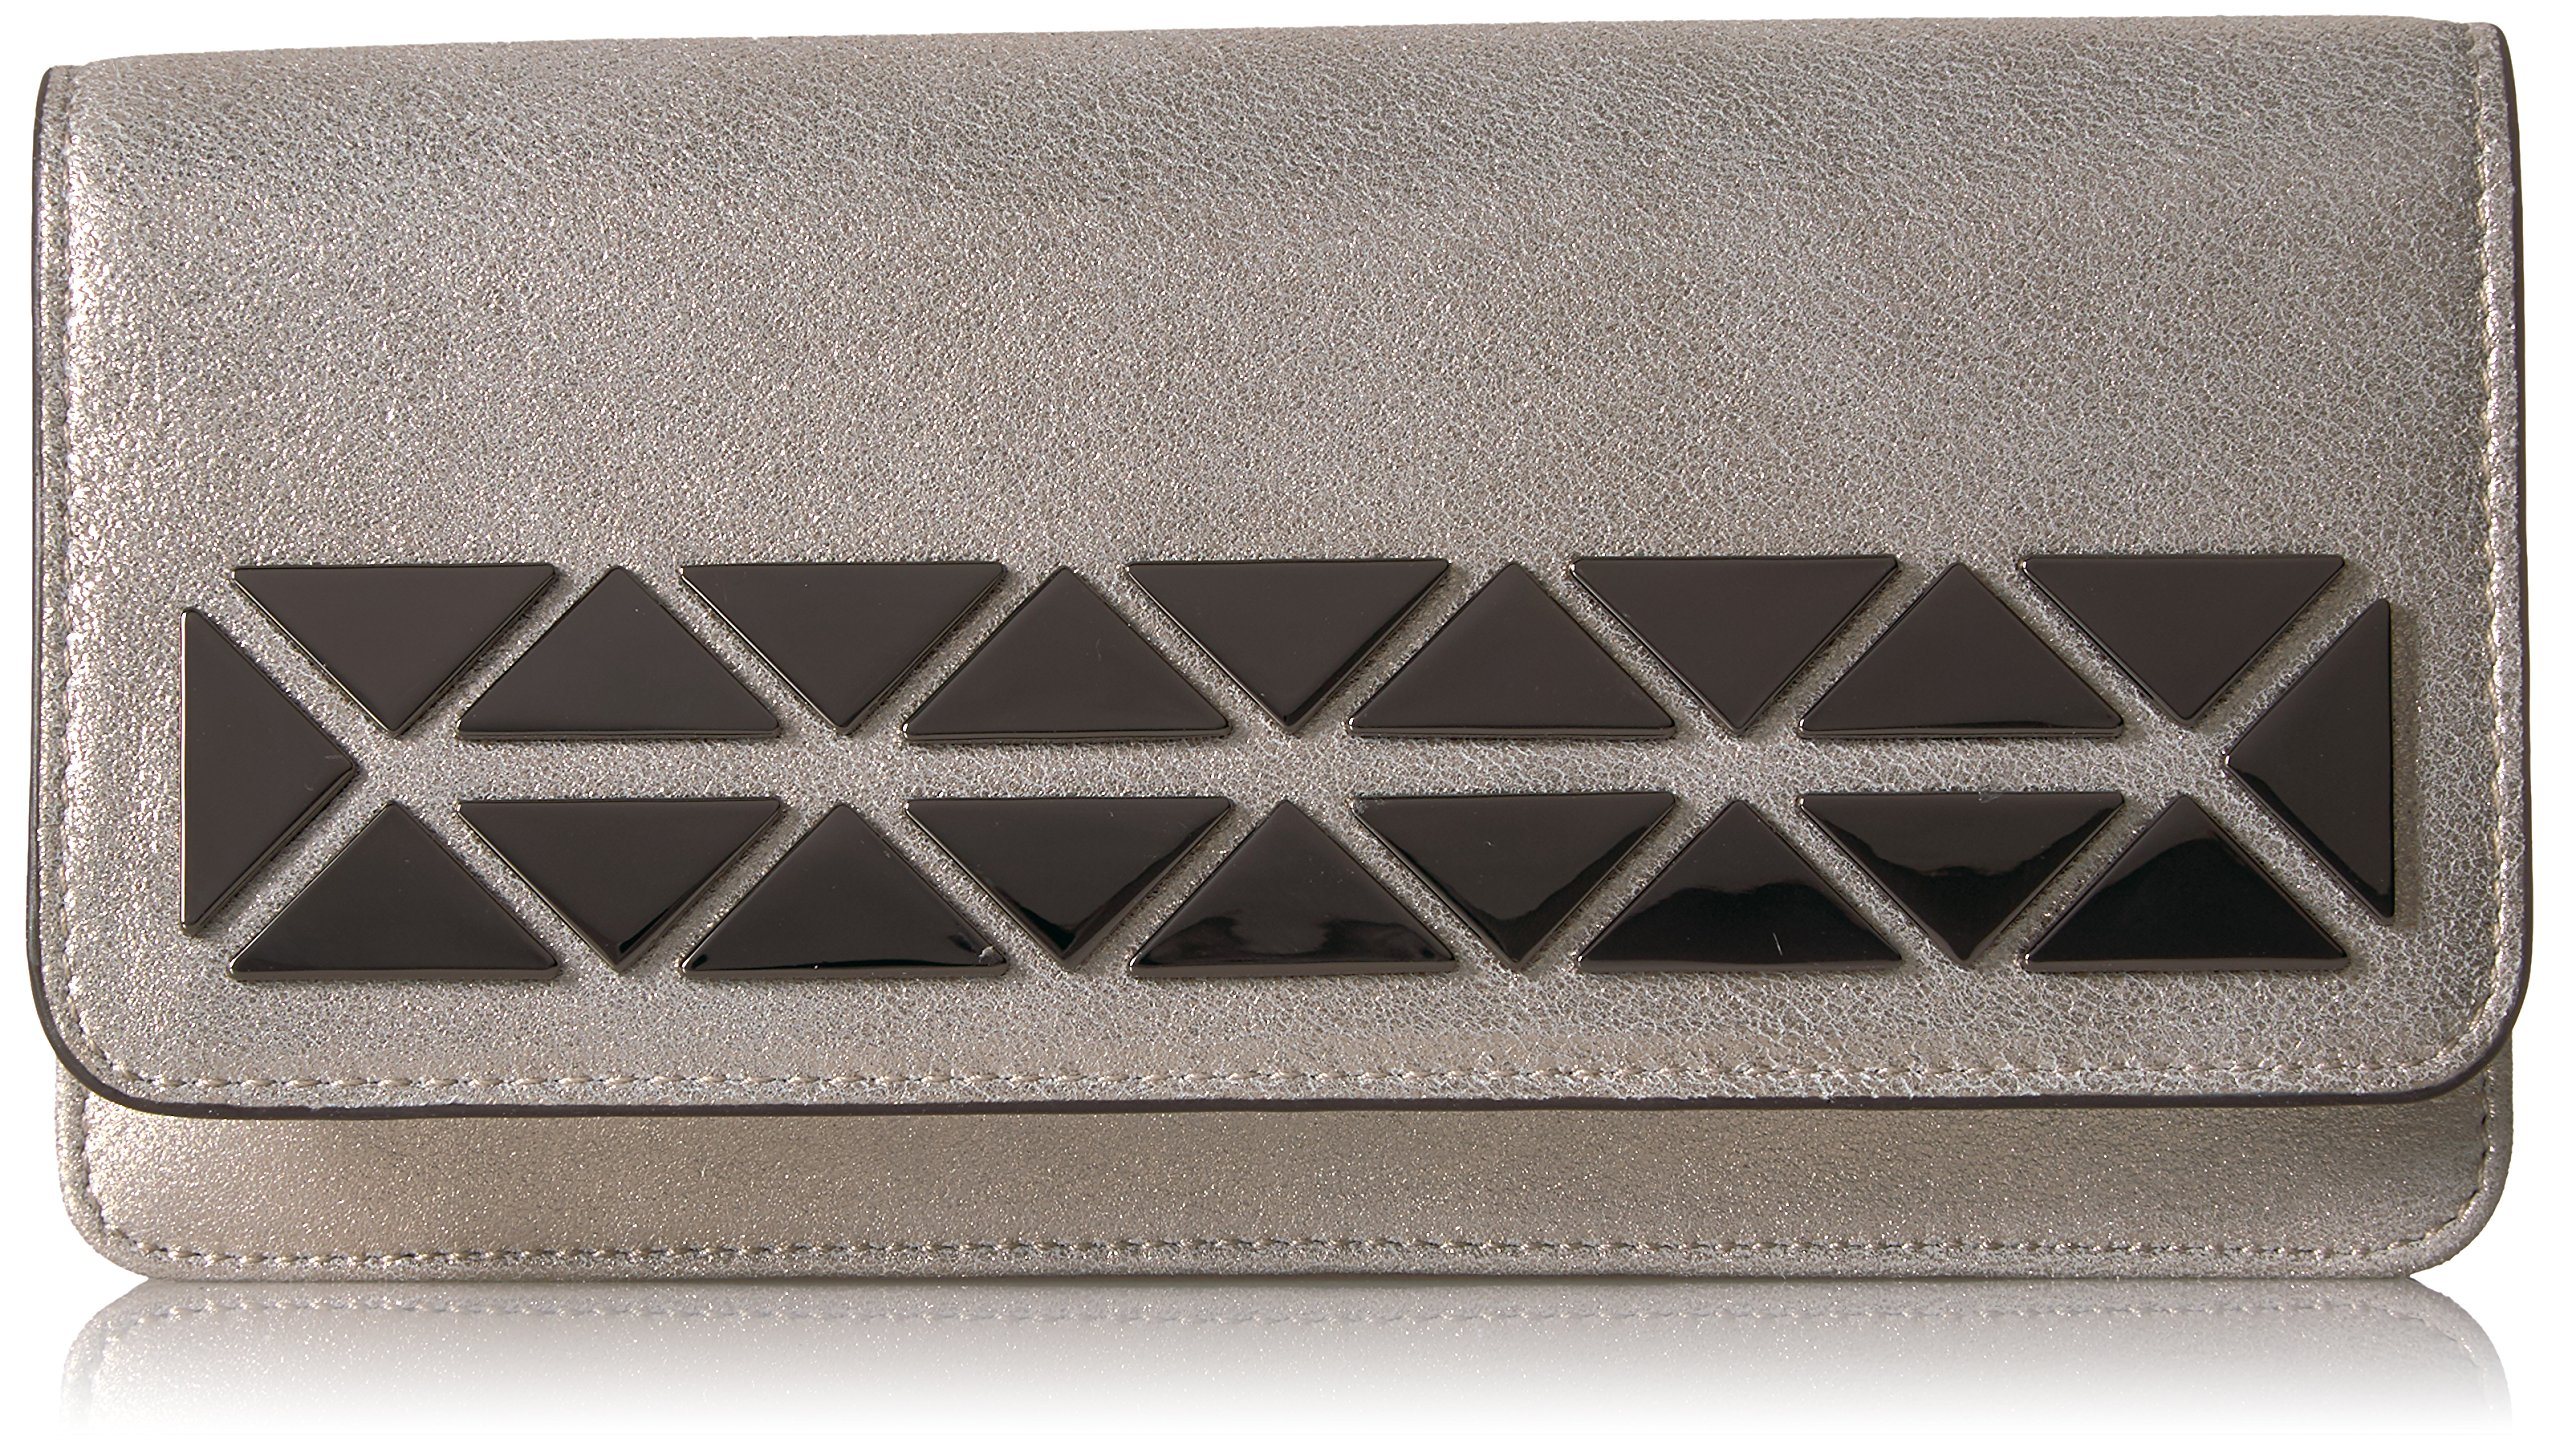 Vince Camuto Vince Camuto Fit Wallet Wallet